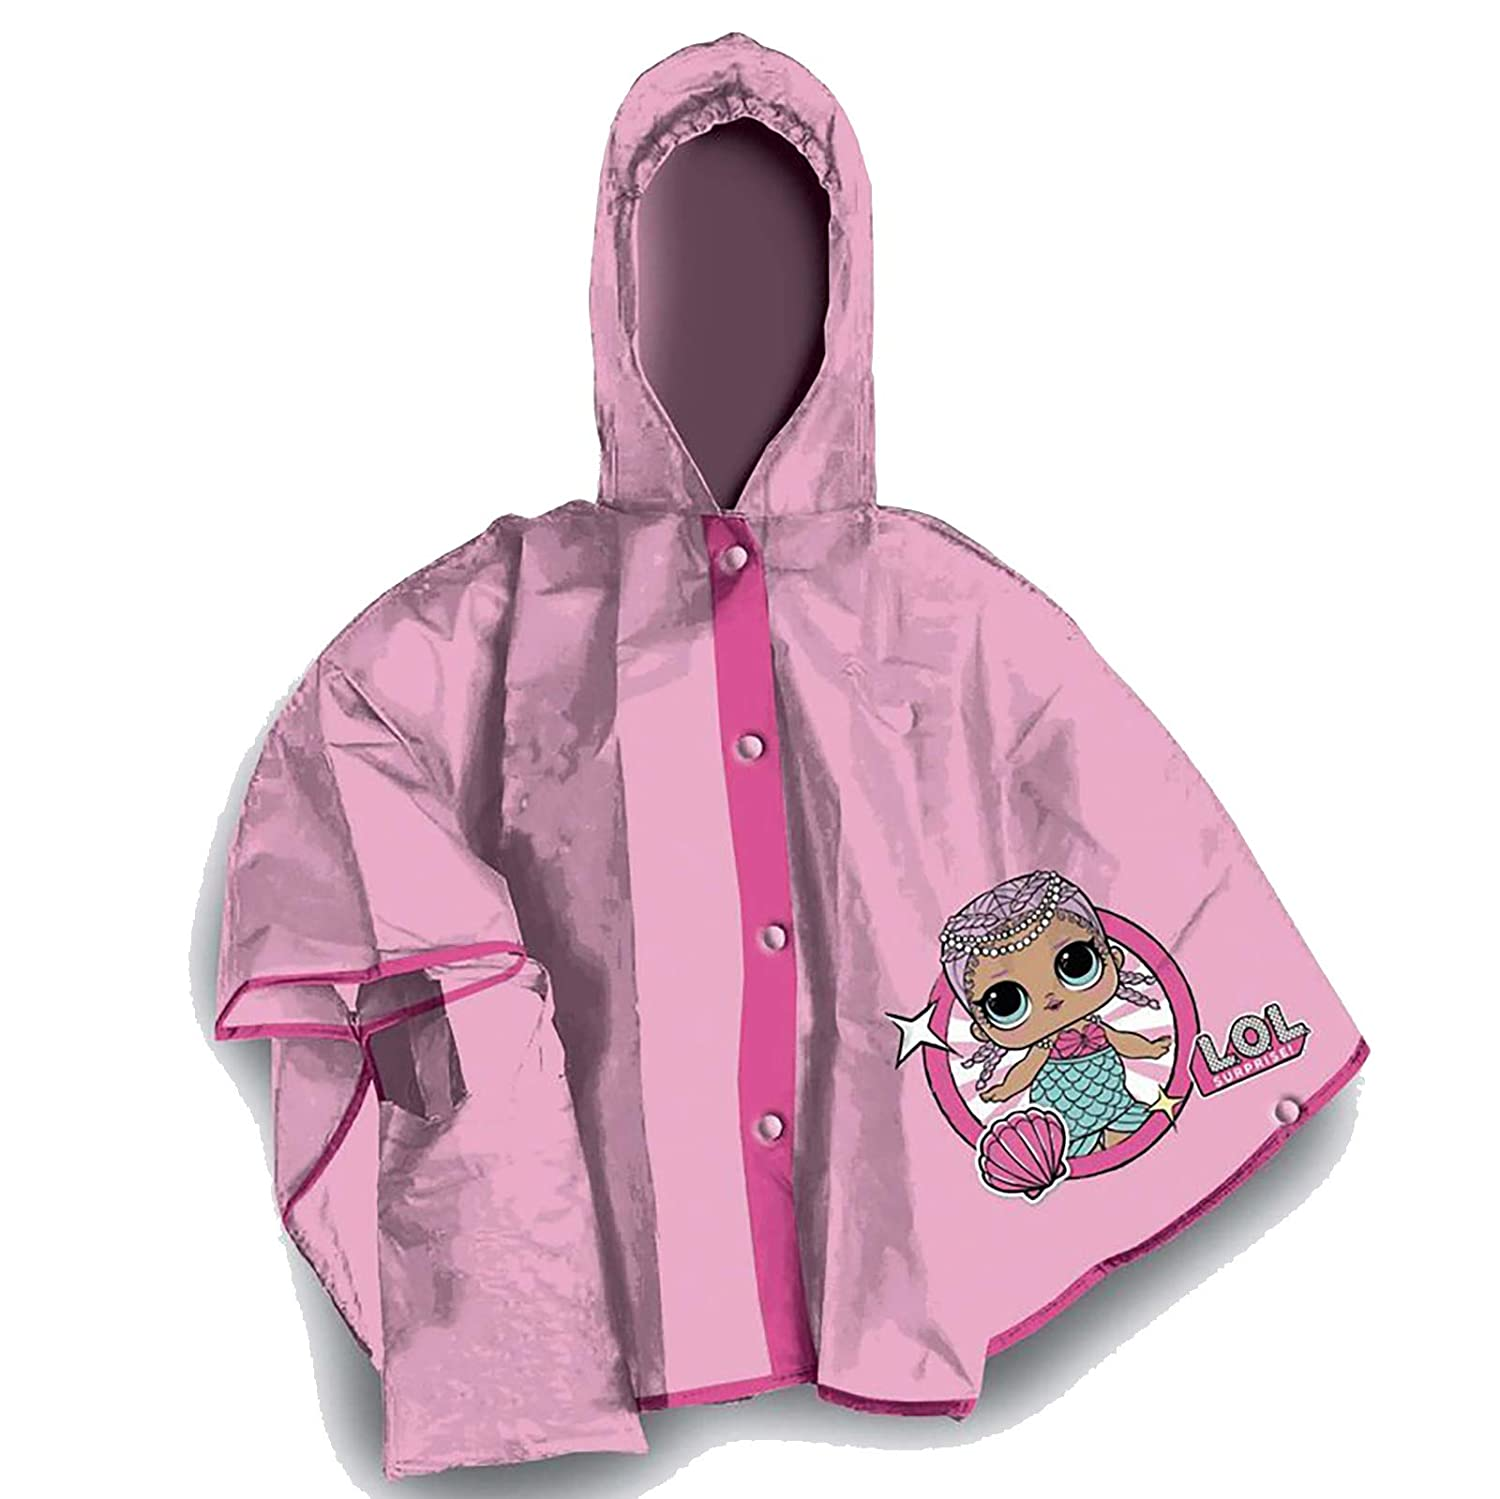 Lol Surprise Girls' Cape Raincoat Pink Pink